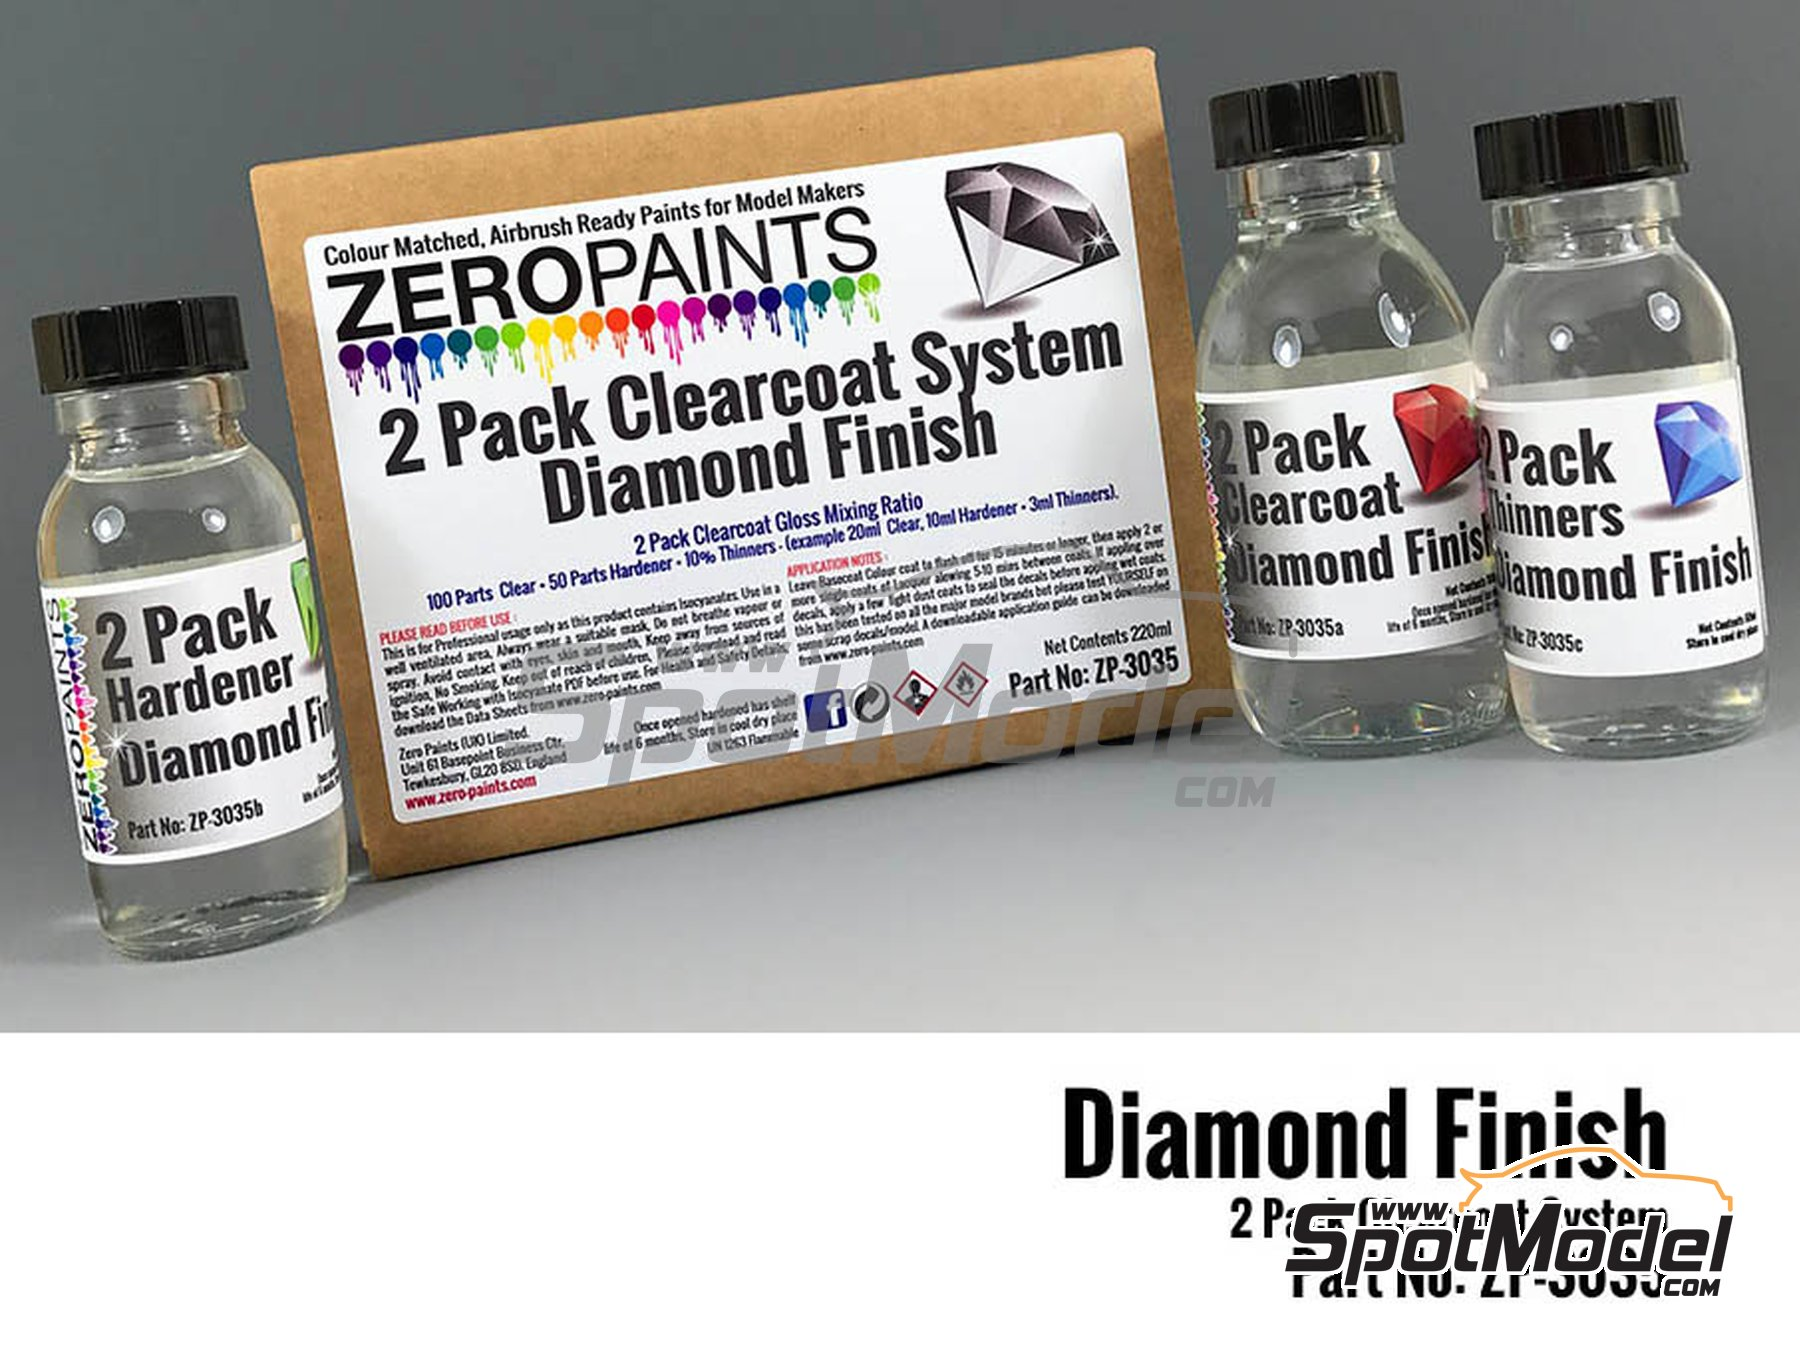 Image 1: Diamond Finish - 2 Pack GLOSS Clearcoat System - 2K Urethane | Clearcoat manufactured by Zero Paints (ref. ZP-3035)